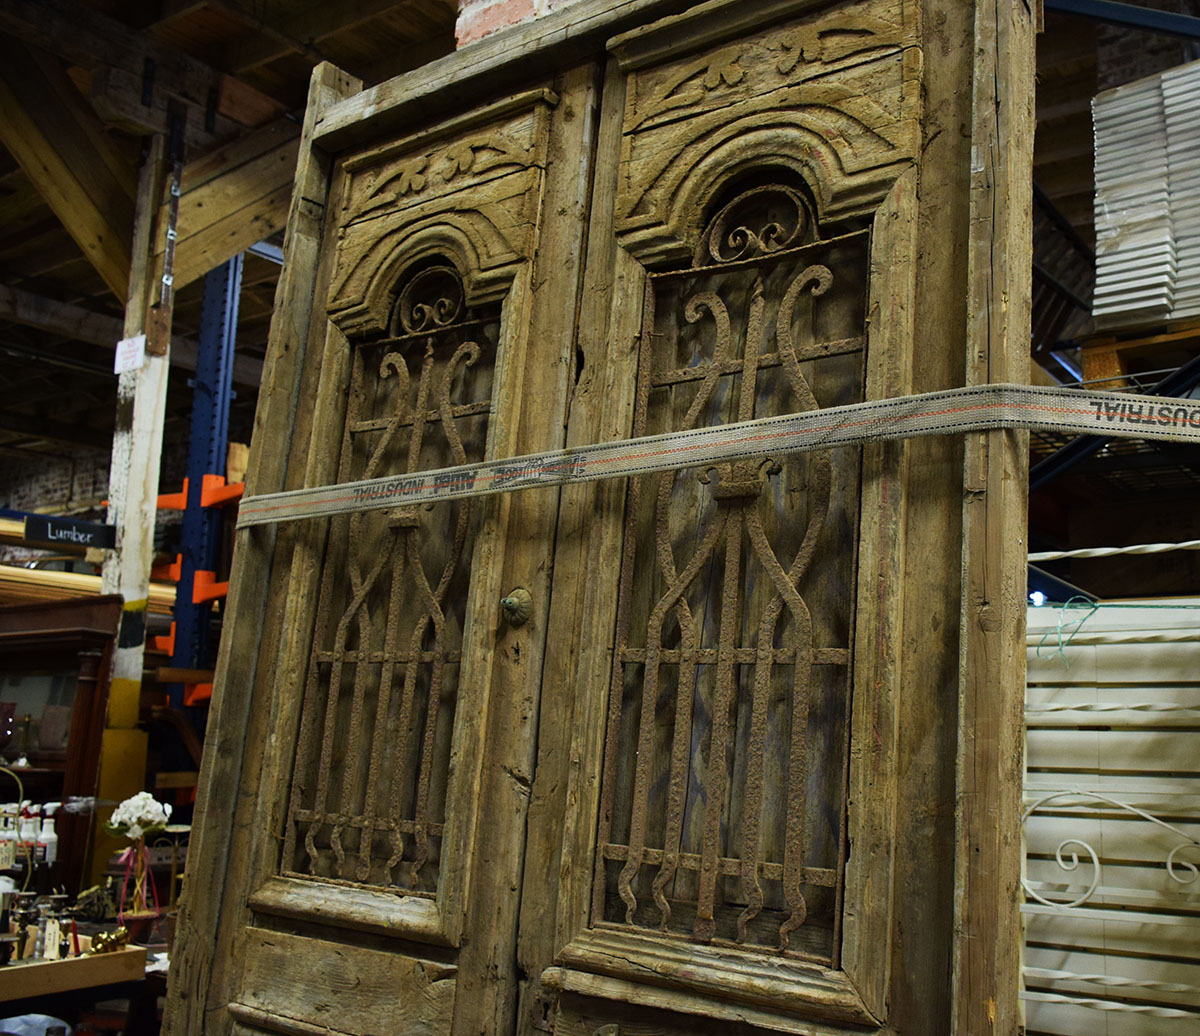 This set of Egyptian doors really has some nice hand crafted detail. & Beautiful Antique Doors From Egypt Pezcame.Com